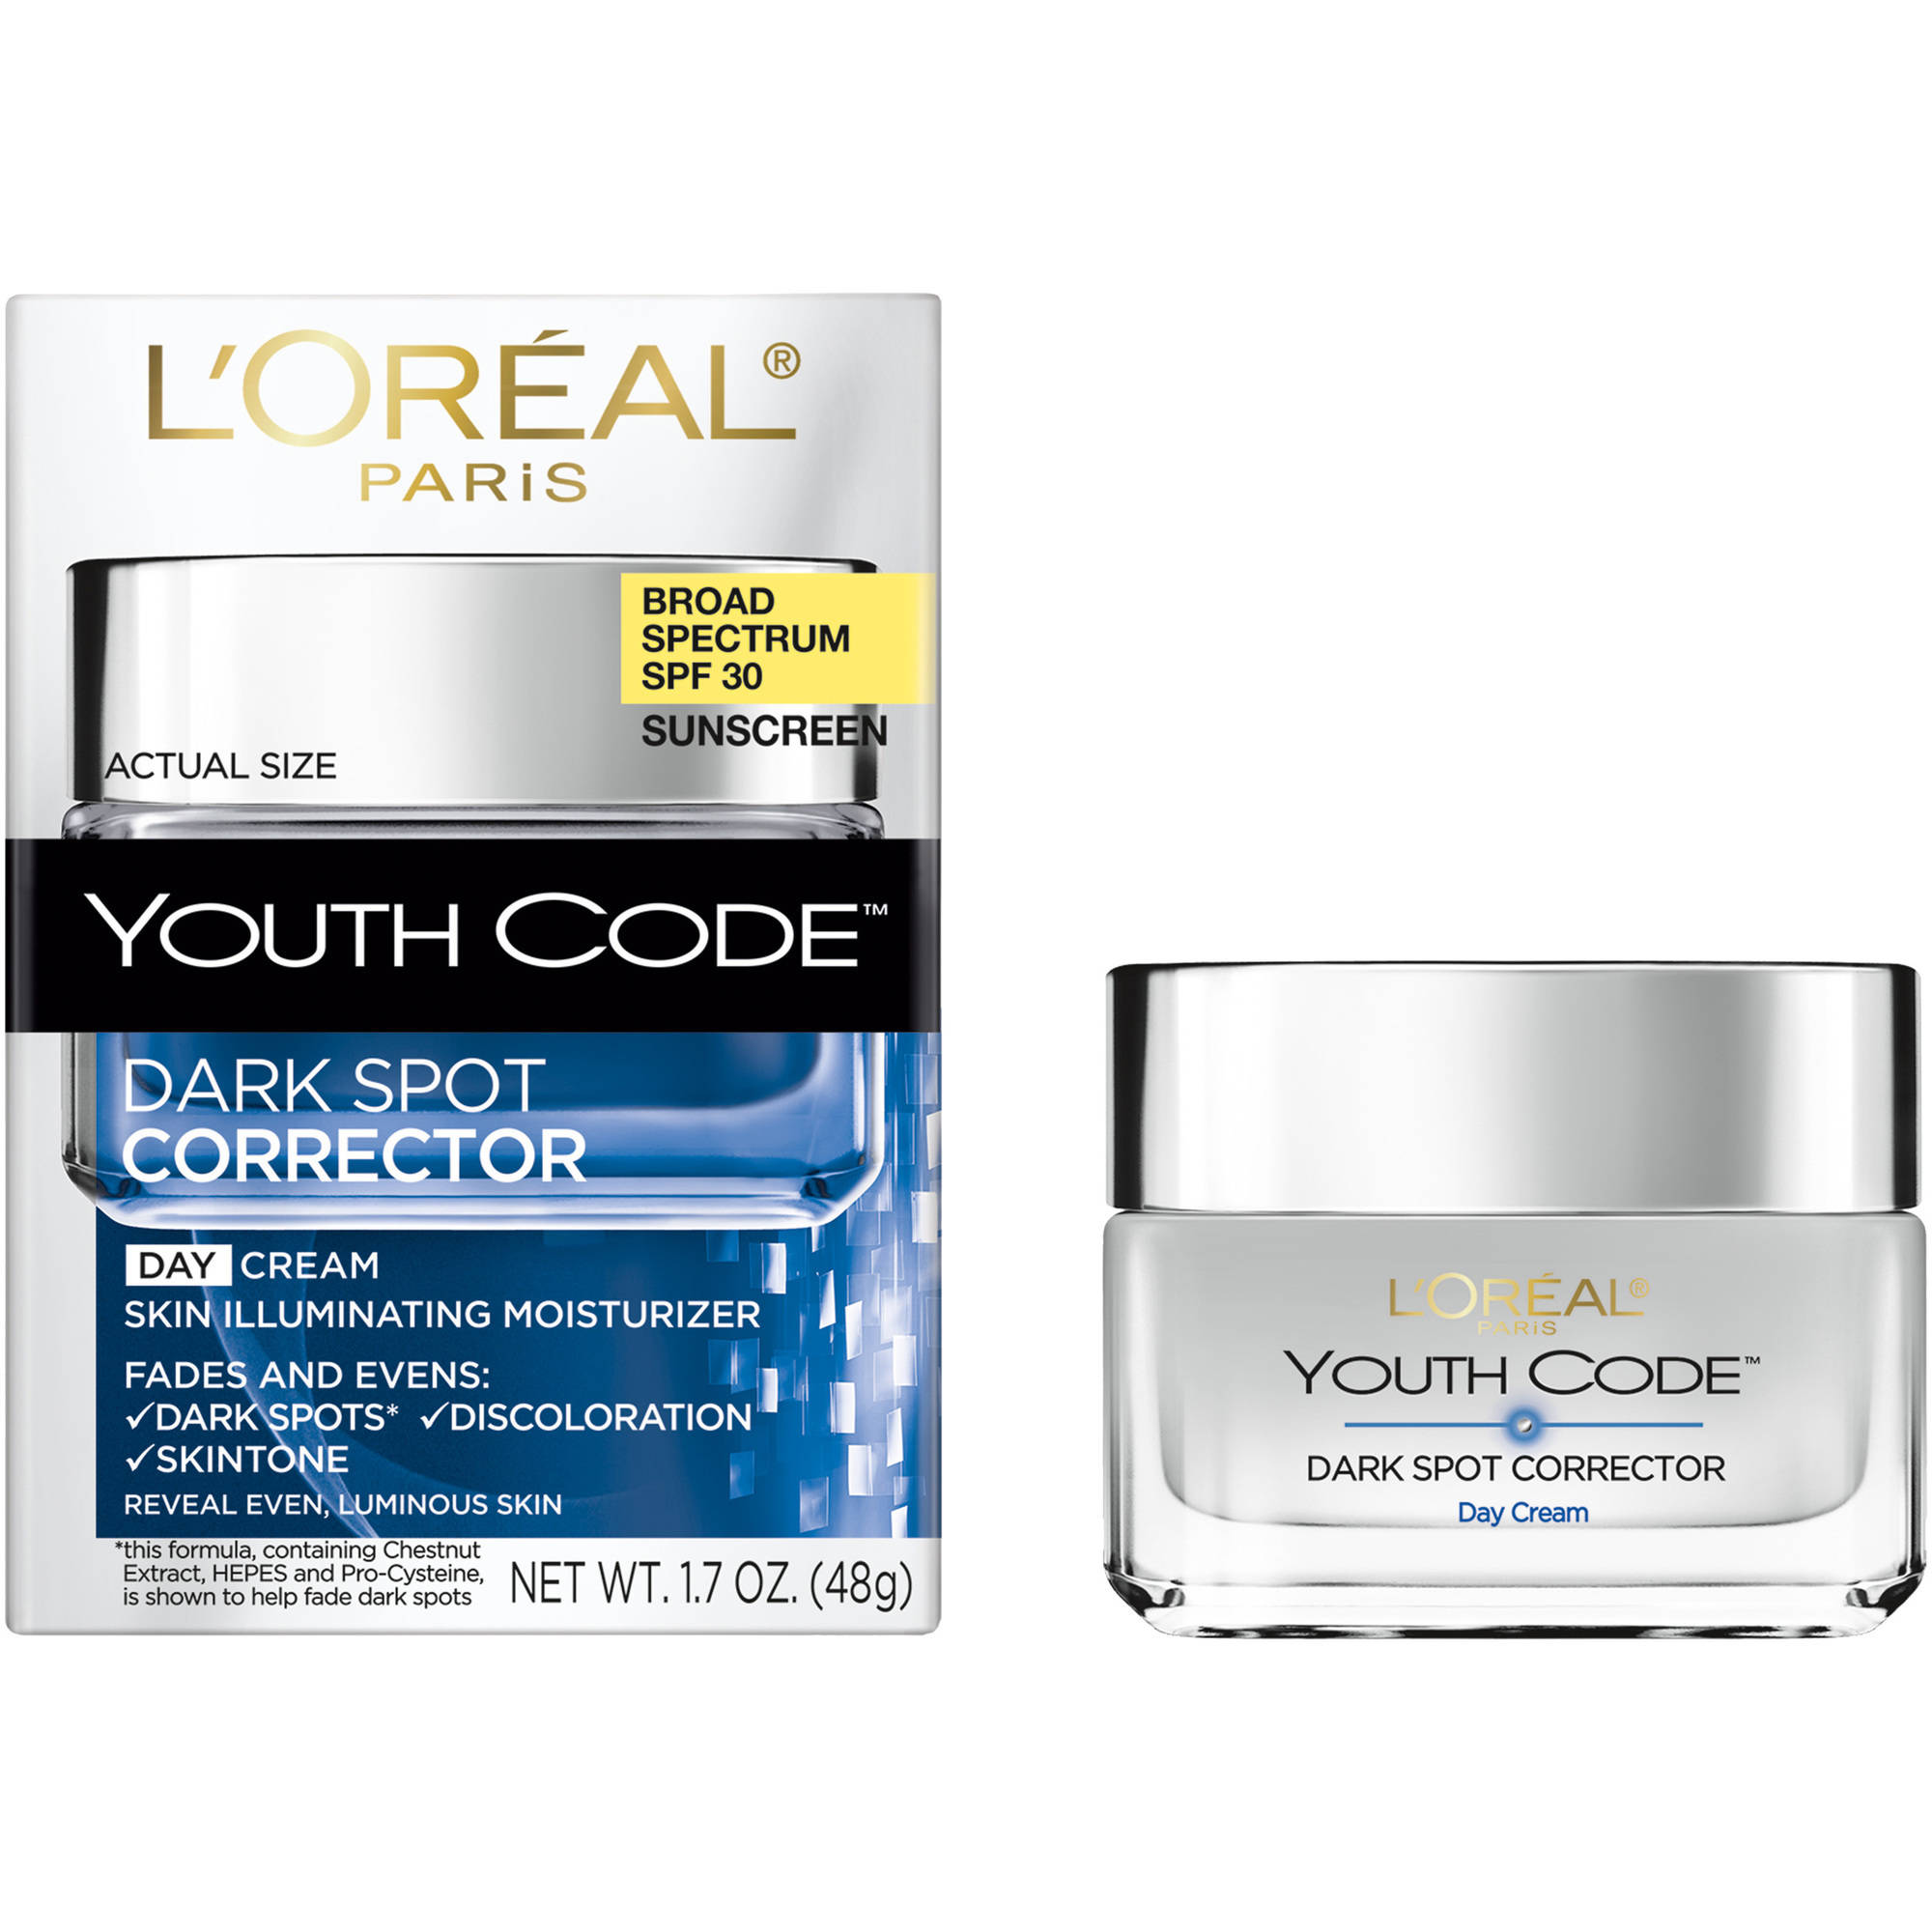 L'Oreal Paris Youth Code Dark Spot SPF 30 Day Cream Moisturizer, 1.6 oz